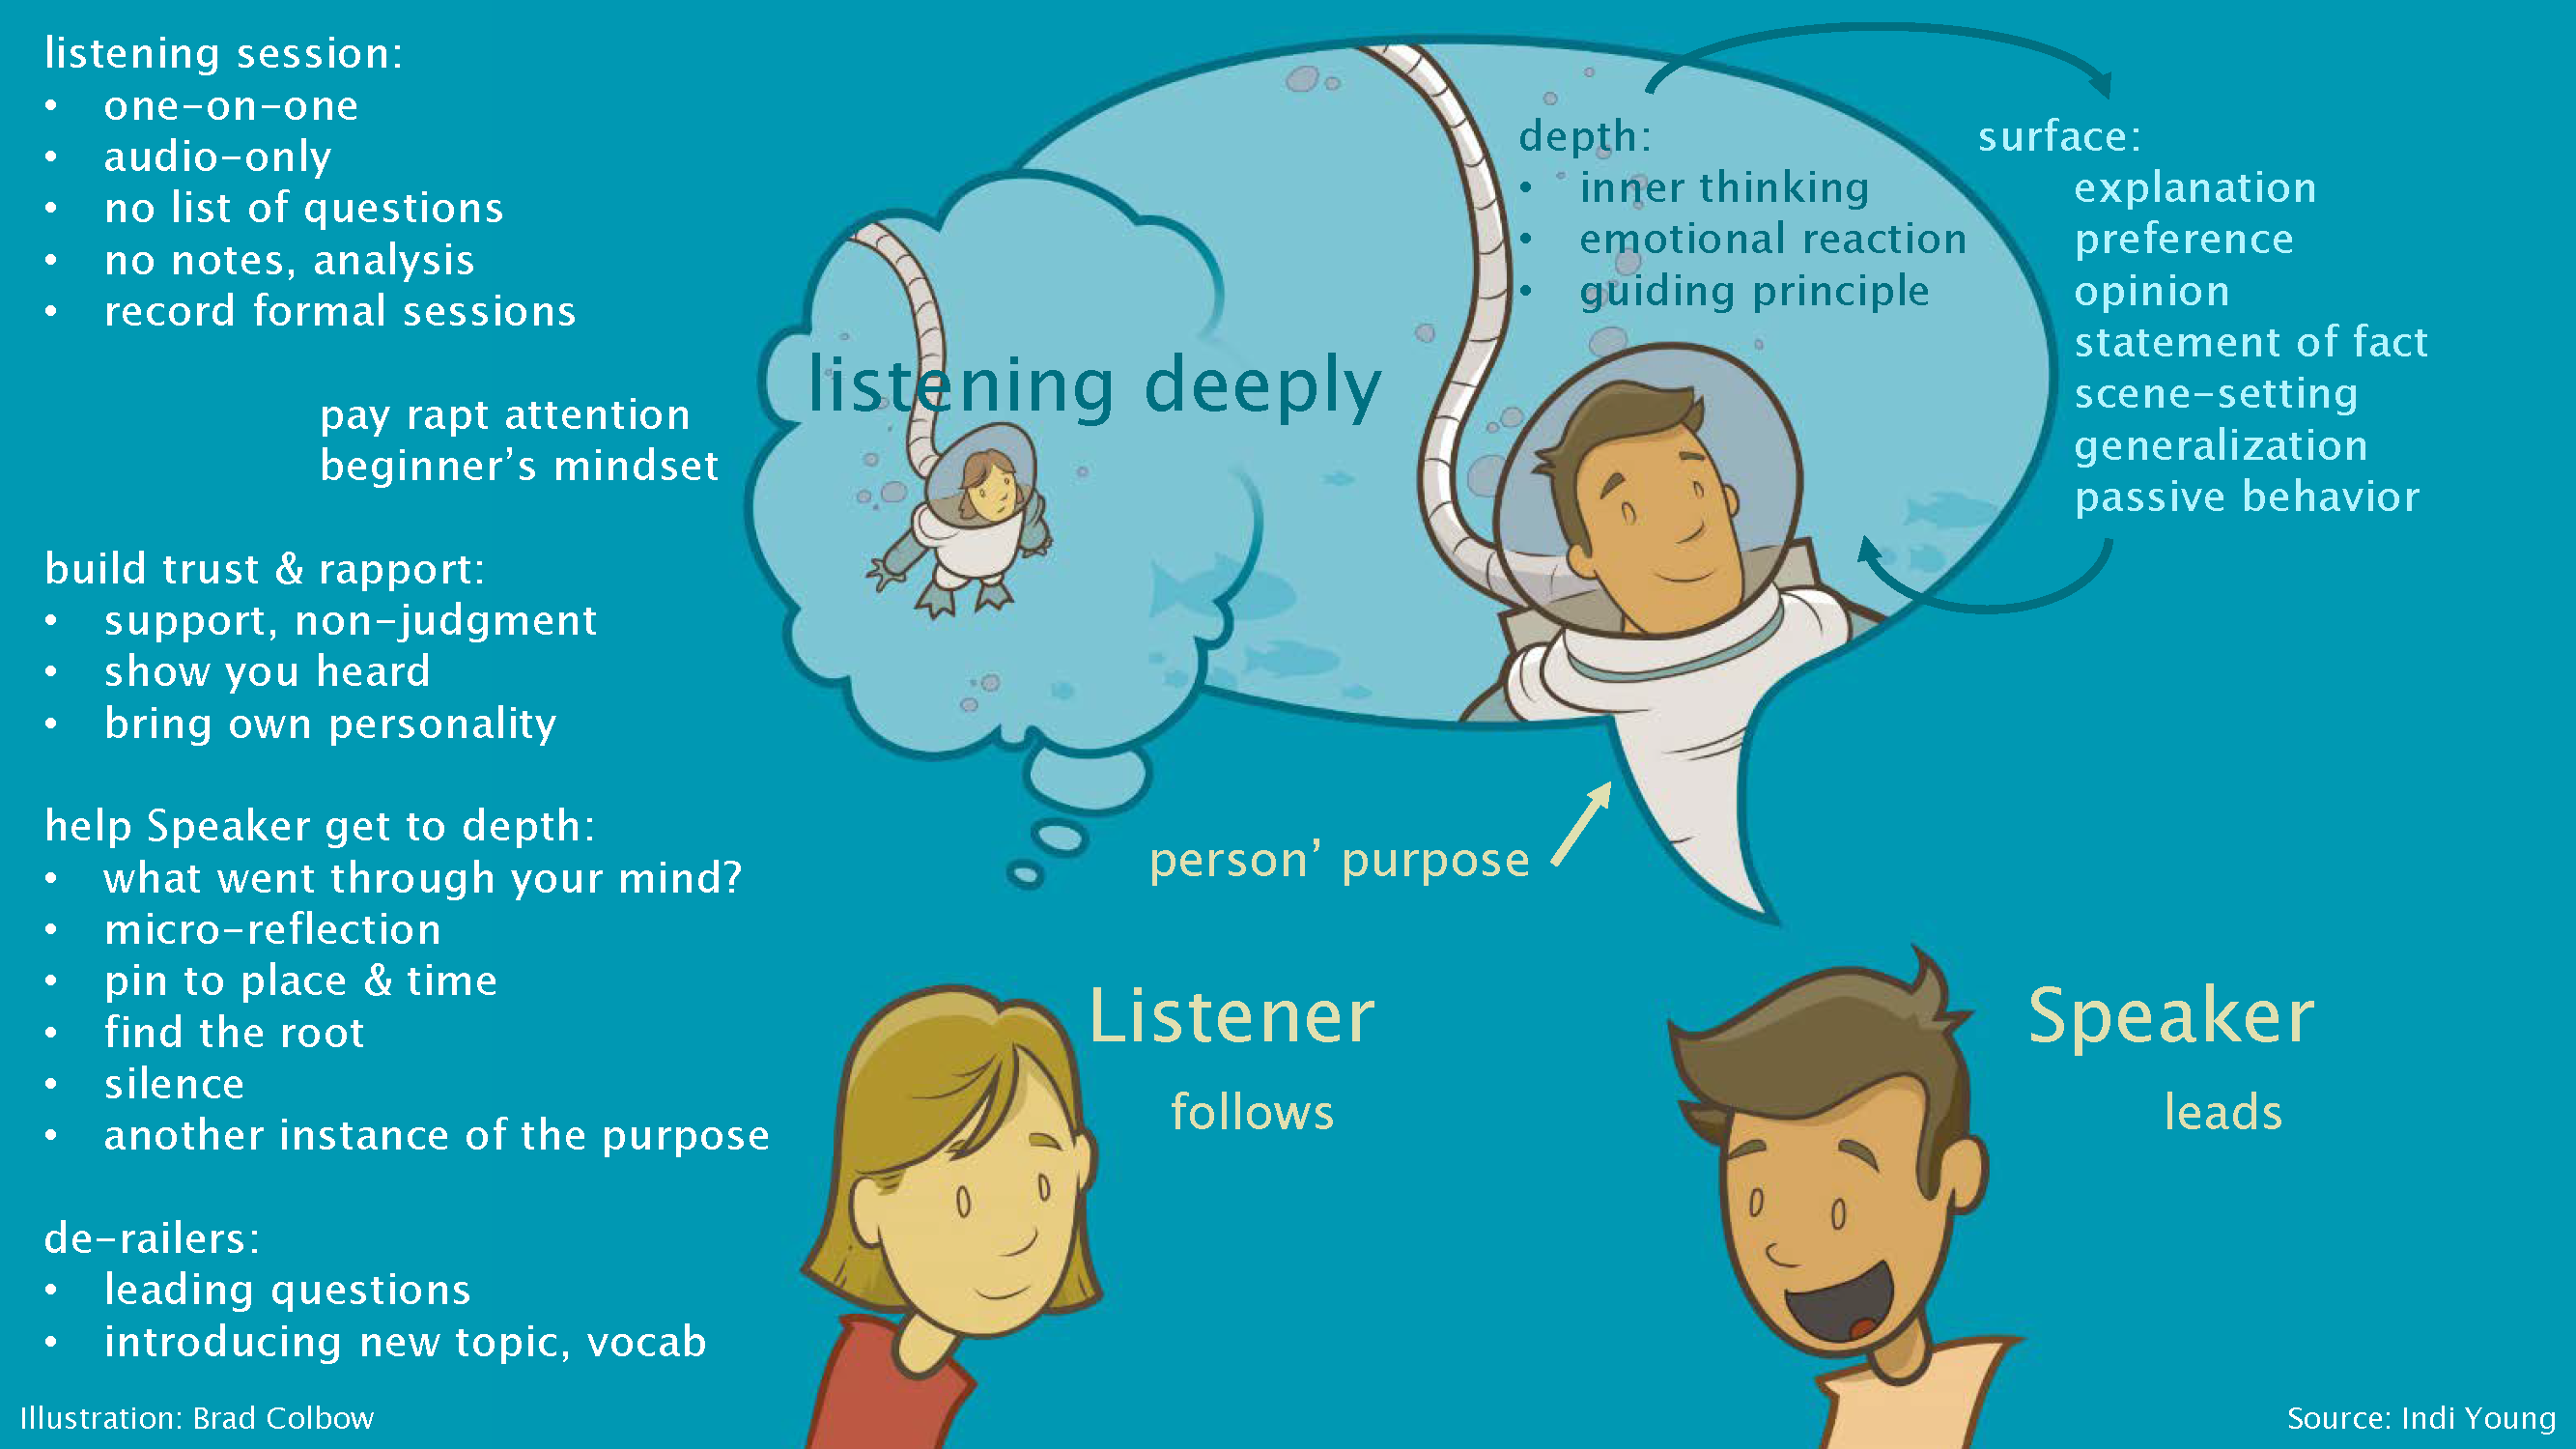 Diagram of what happens between listener and speaker in a listening session. Indi covers all of this in the audio.